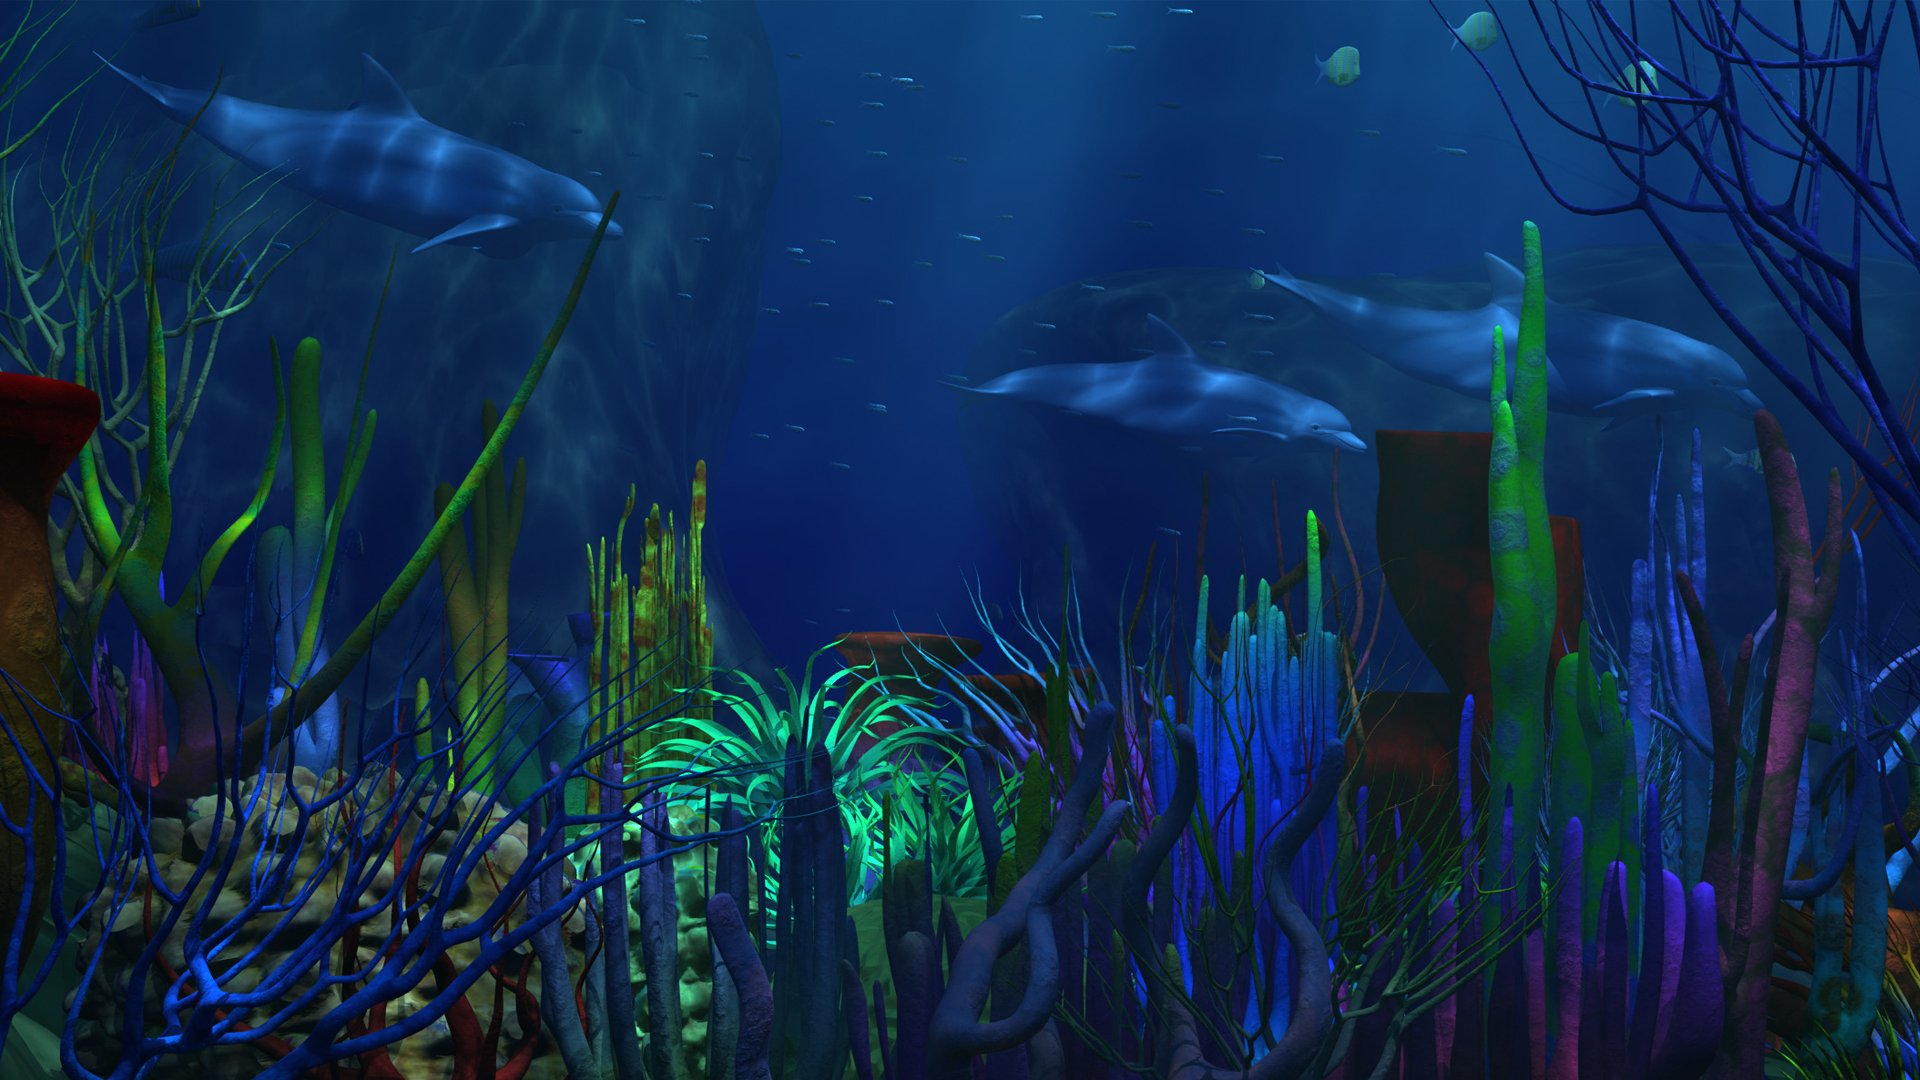 Underwater sea fishes hd wallpapers npicx we share - Hd Underwater Wallpaper Wallpapersafari